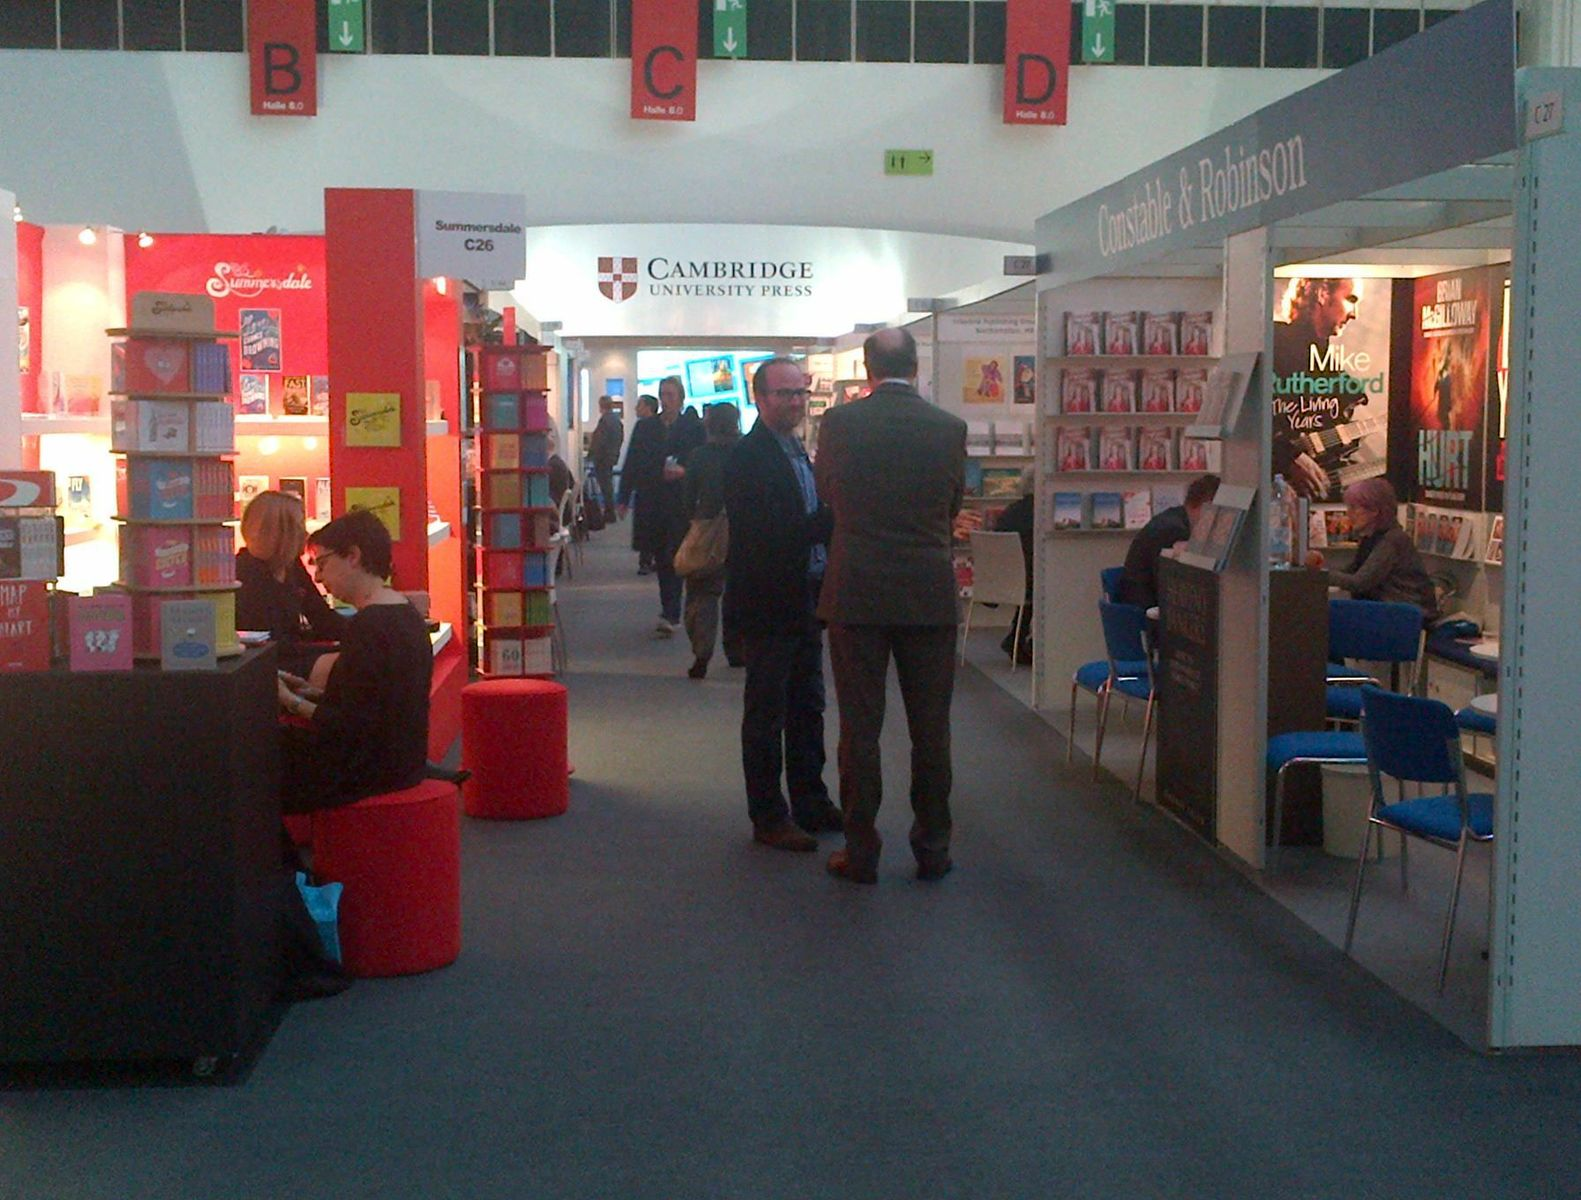 Cambridge University Press stand amongst others at Frankfurt Book Fair